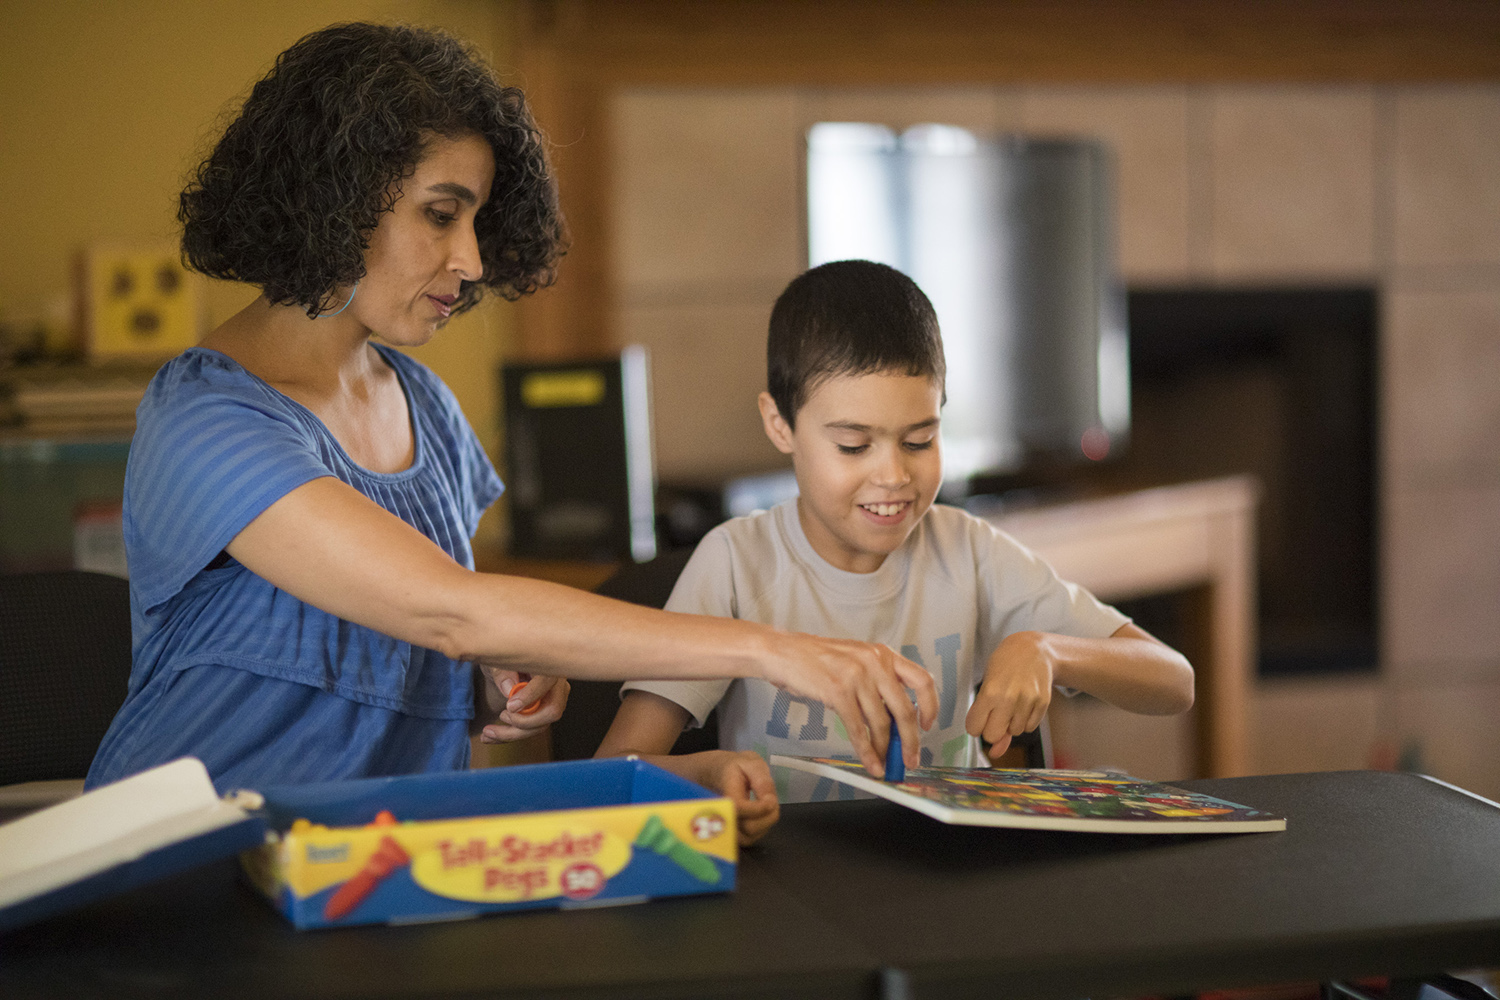 Rosanna Armendariz plays a motor skills game with her son, Octavio, at their home in El Paso, Texas.